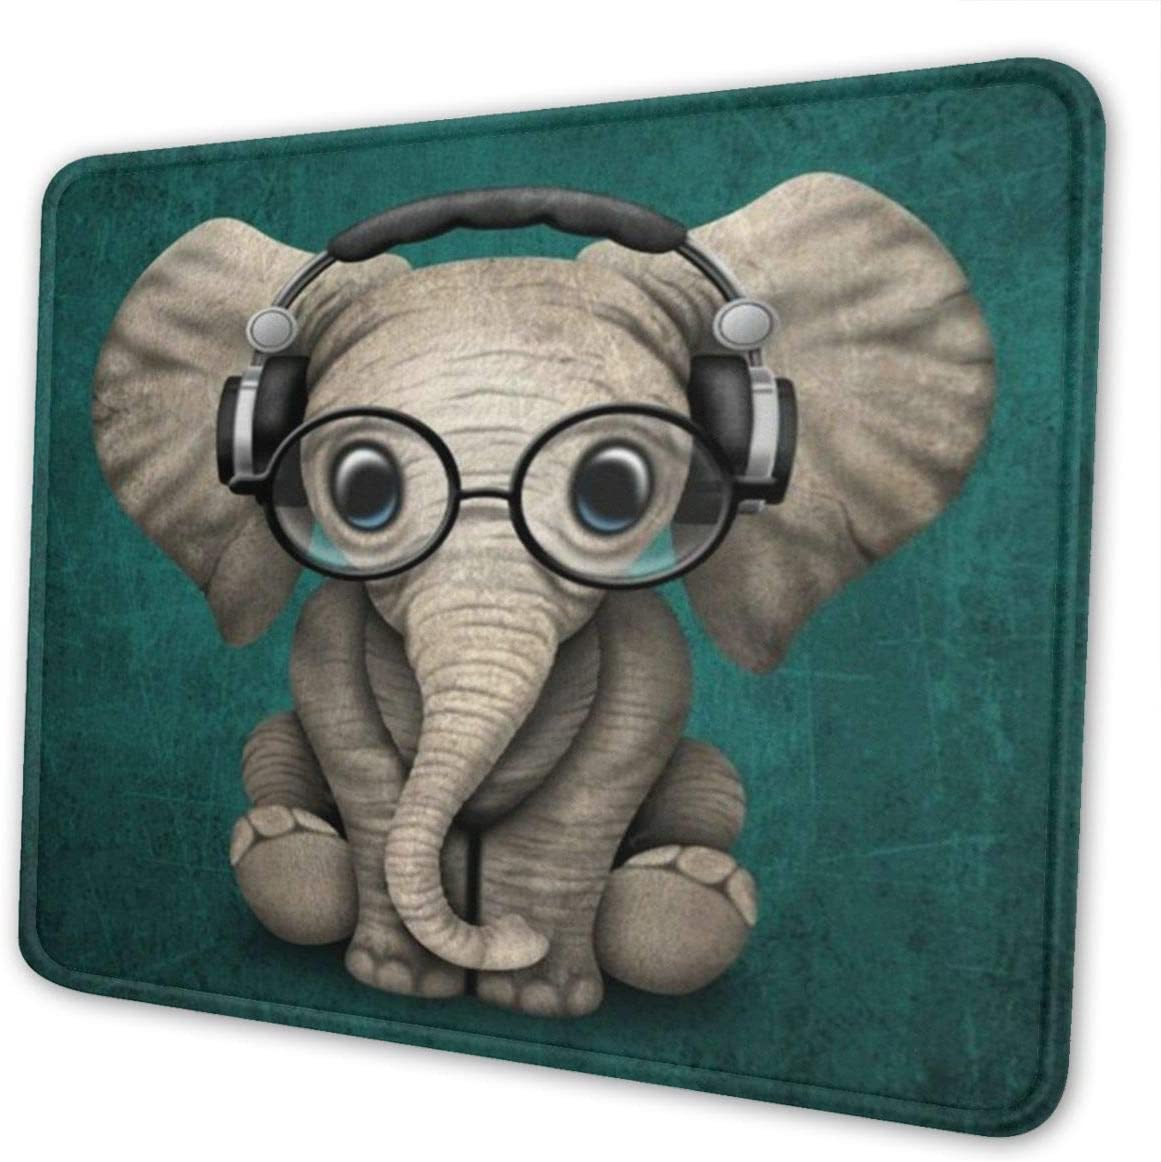 MSGUIDE Mouse Pad with Max 44% OFF Stitched Glas Edge Baby Branded goods Wearing Elephant